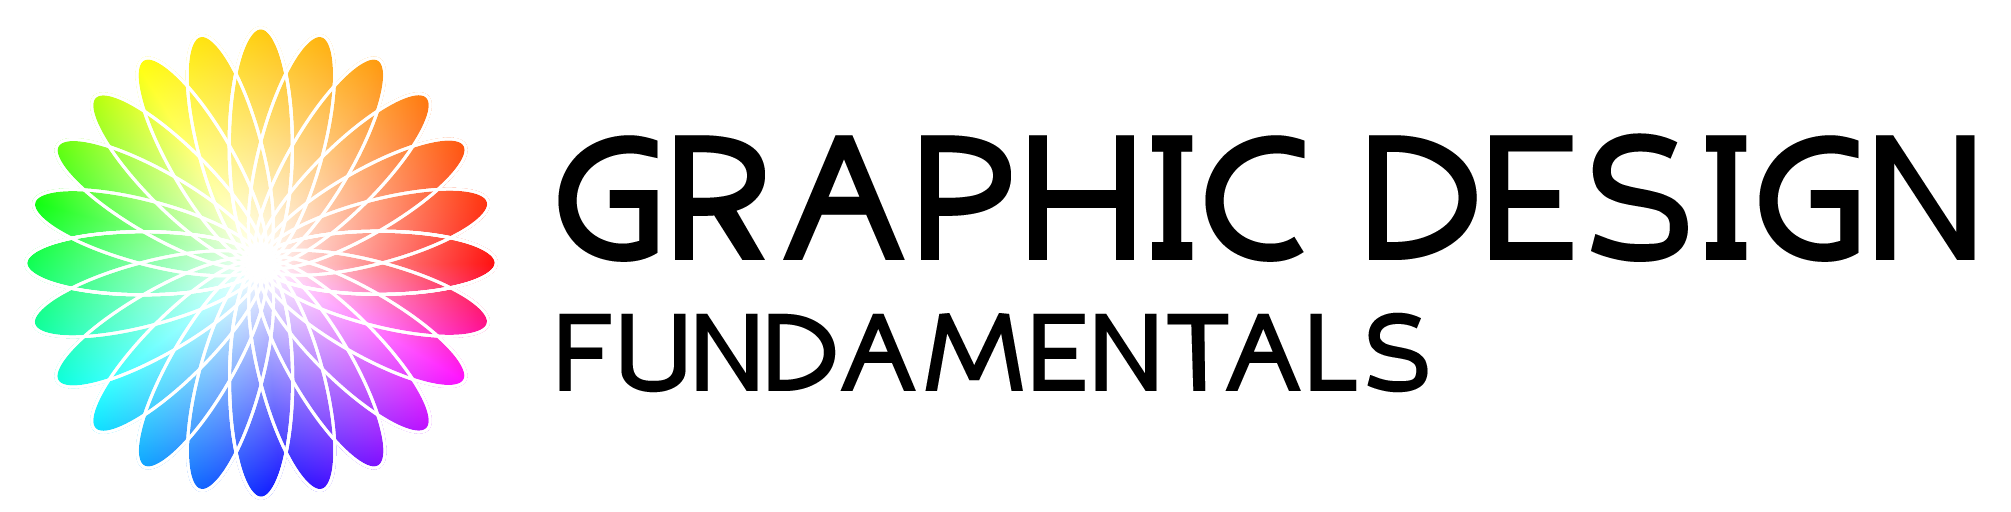 Graphic Design Fundamentals